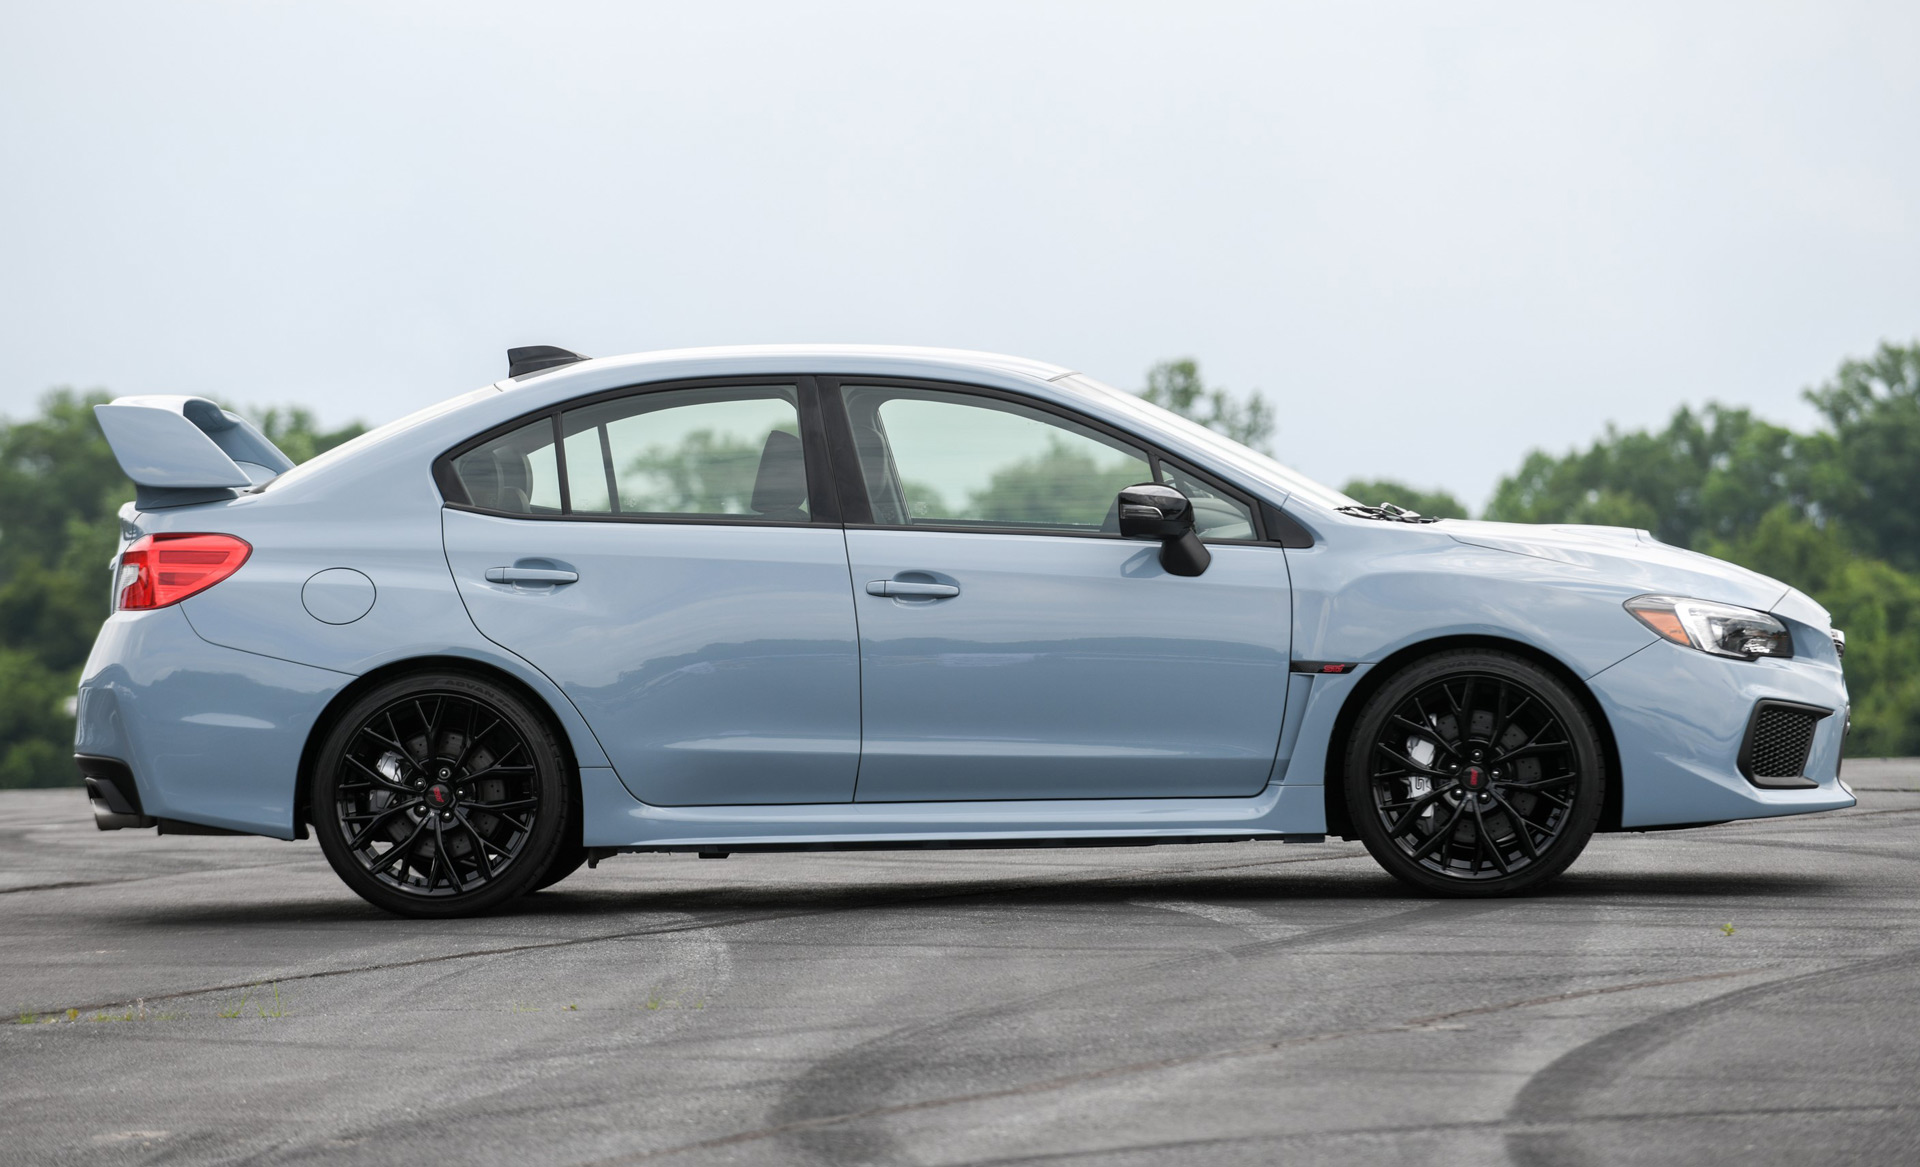 2019 Subaru WRX Review, Ratings, Specs, Prices, and Photos ...